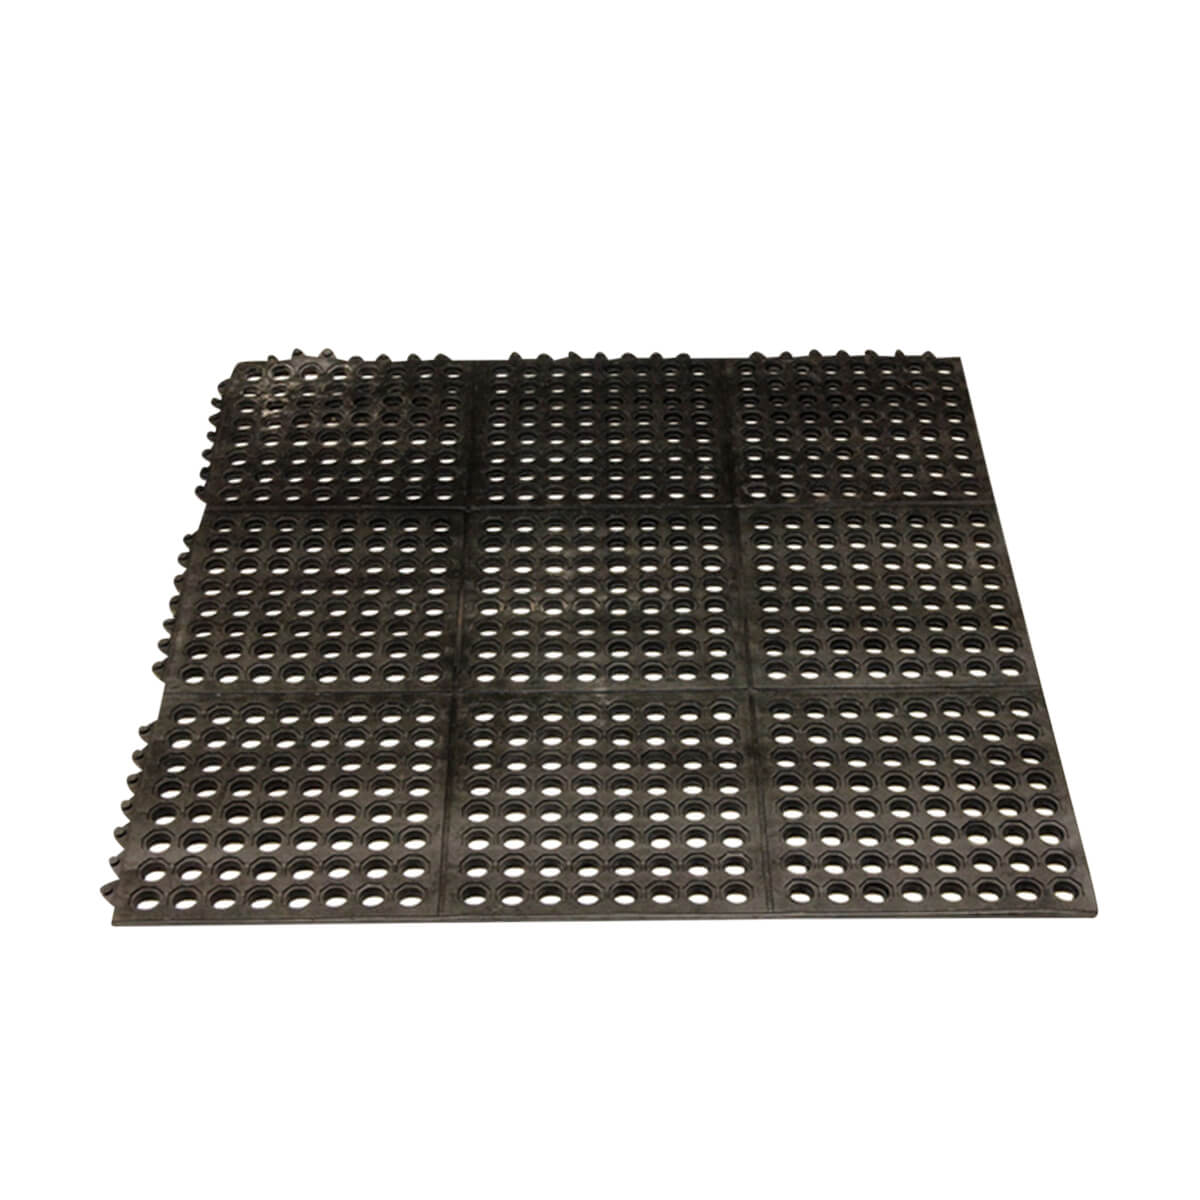 36 x 36 Anti-Fatigue Interlocking Rubber Mat